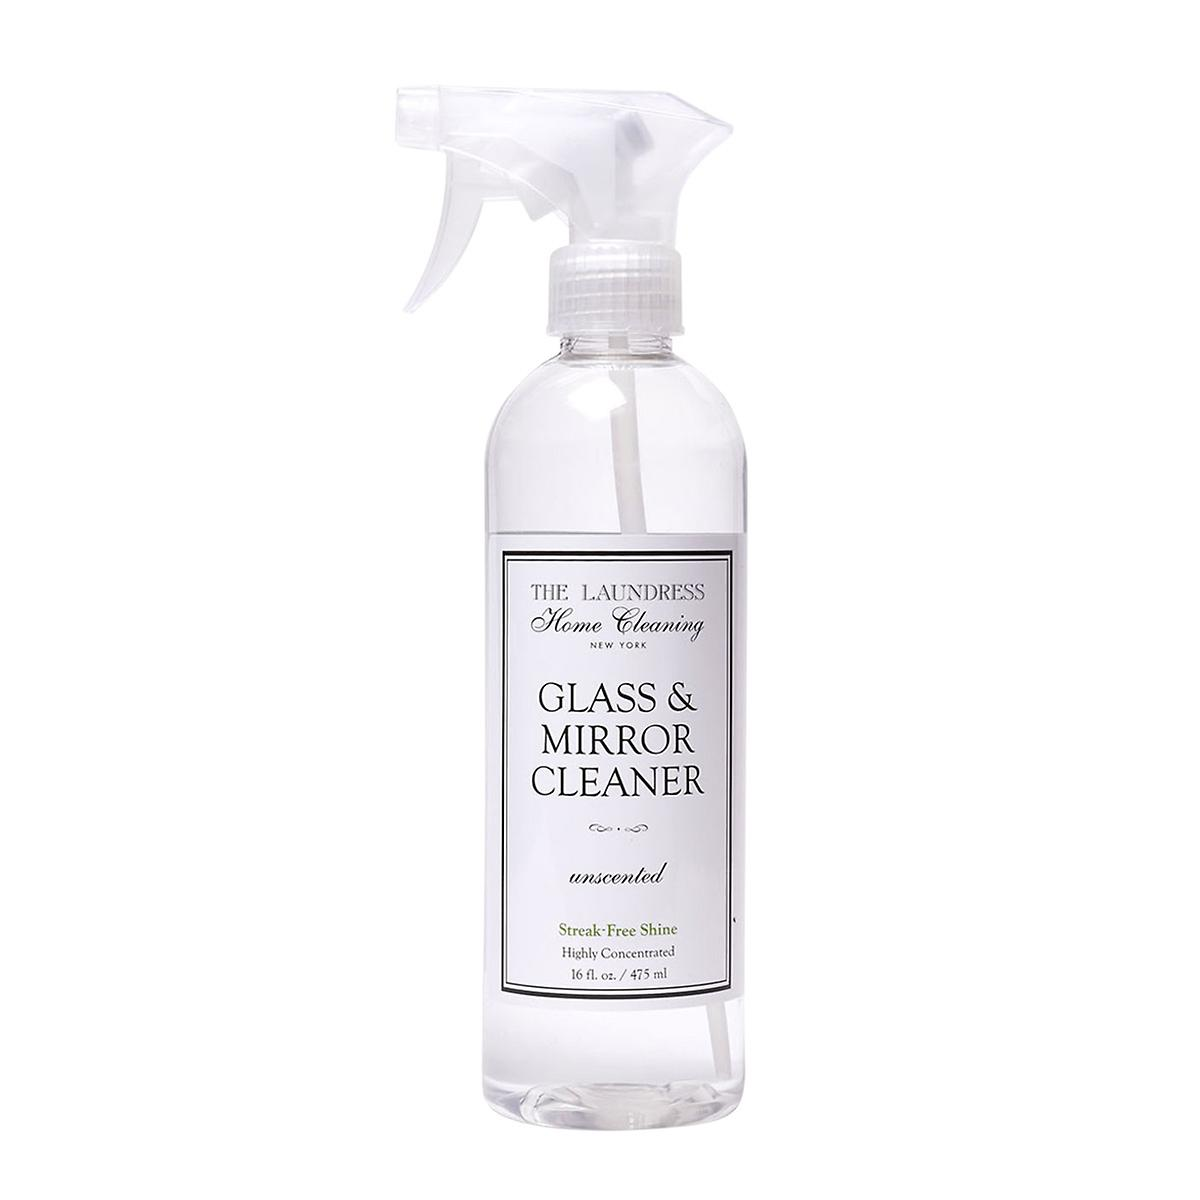 all natural glass & mirror cleaner